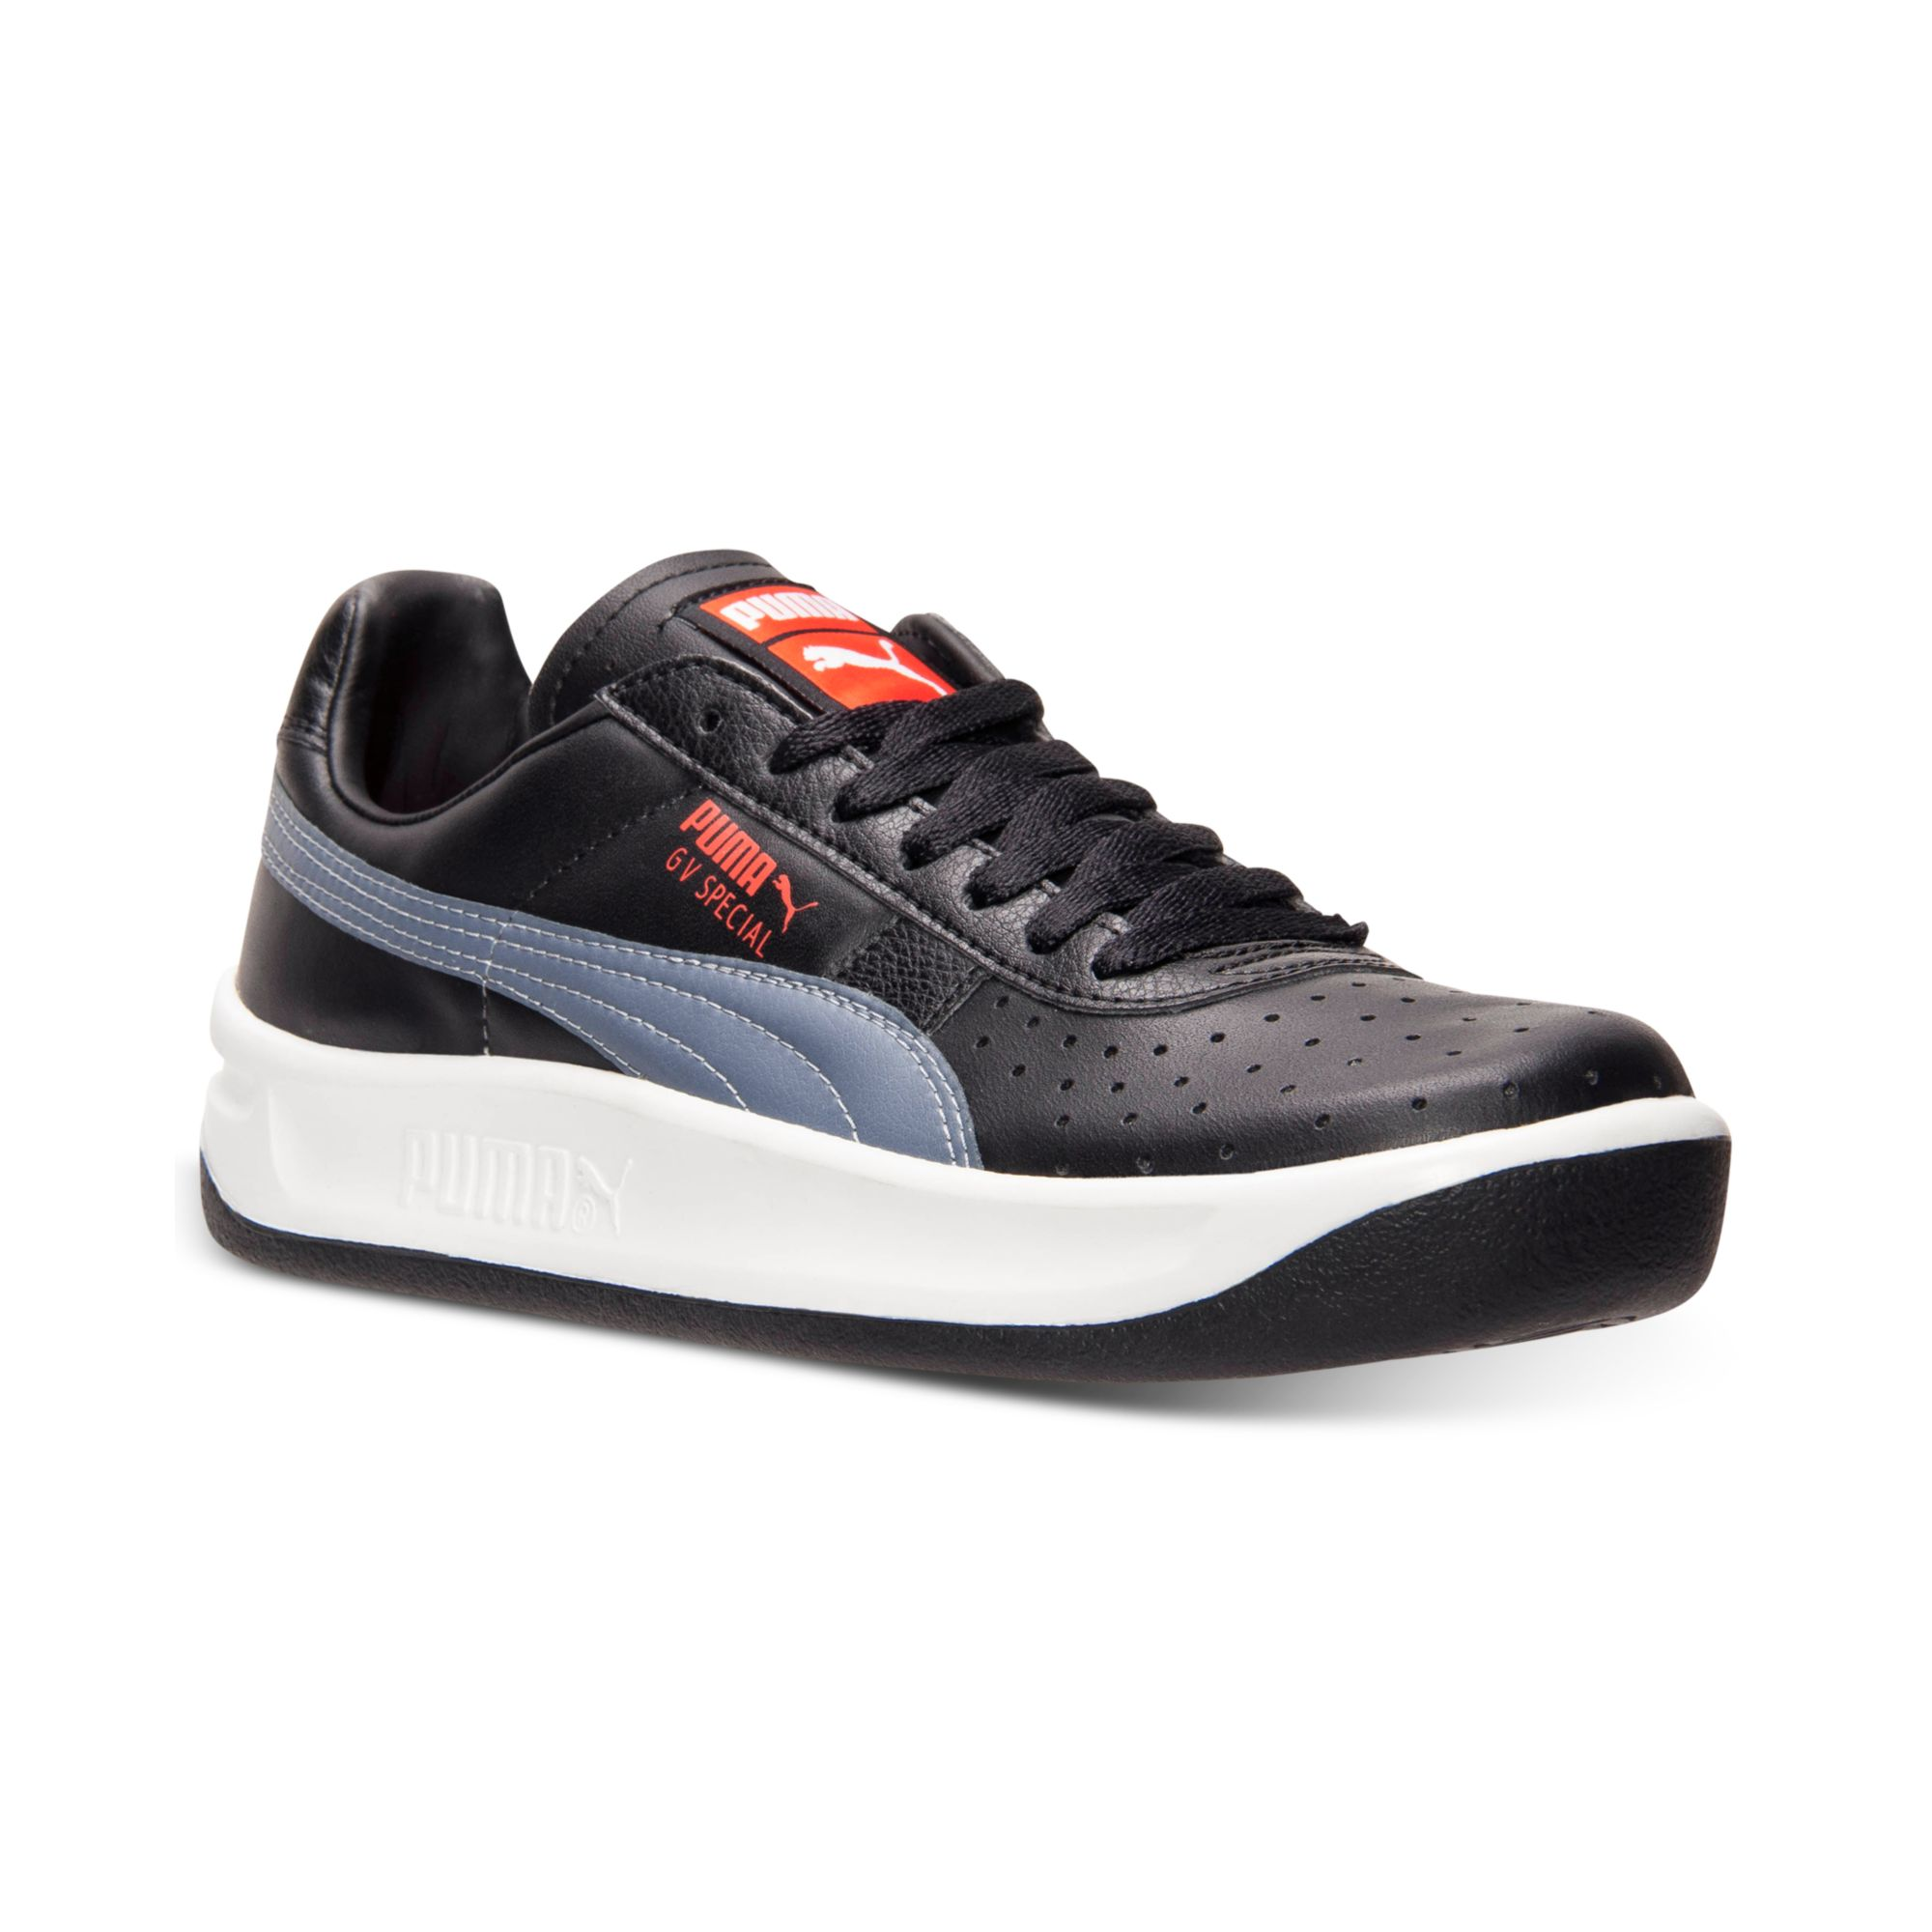 8722c1775b7 Lyst - PUMA Mens The Gv Special Casual Sneakers From Finish Line in ...